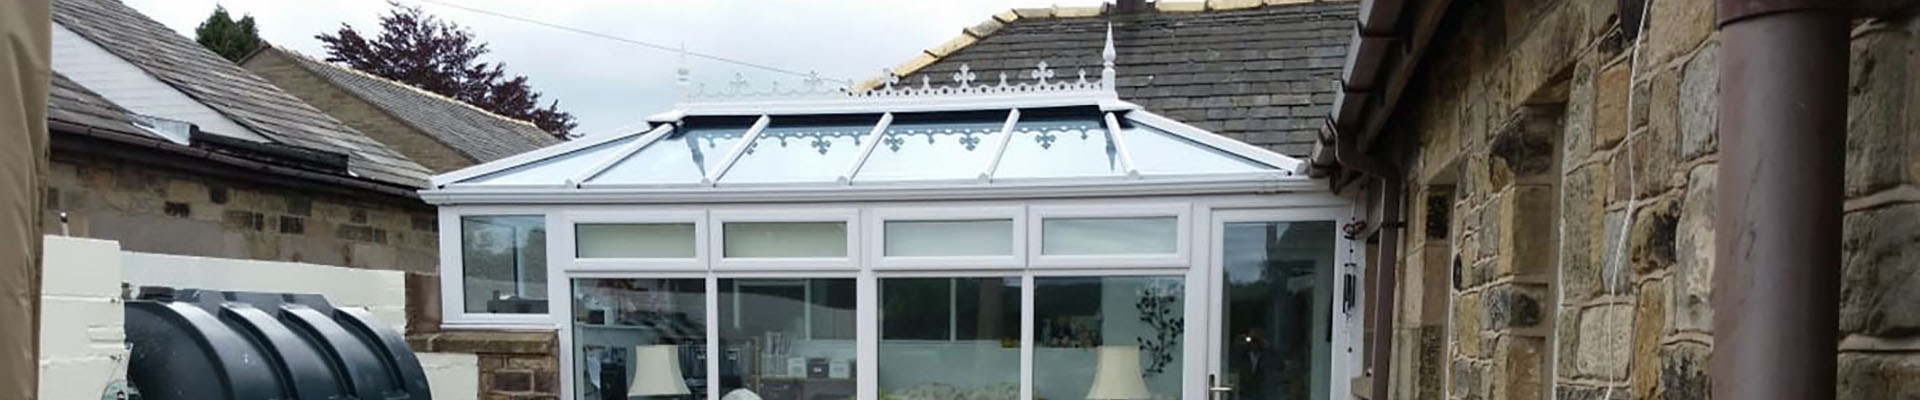 Conservatories by Mirage of Lancaster